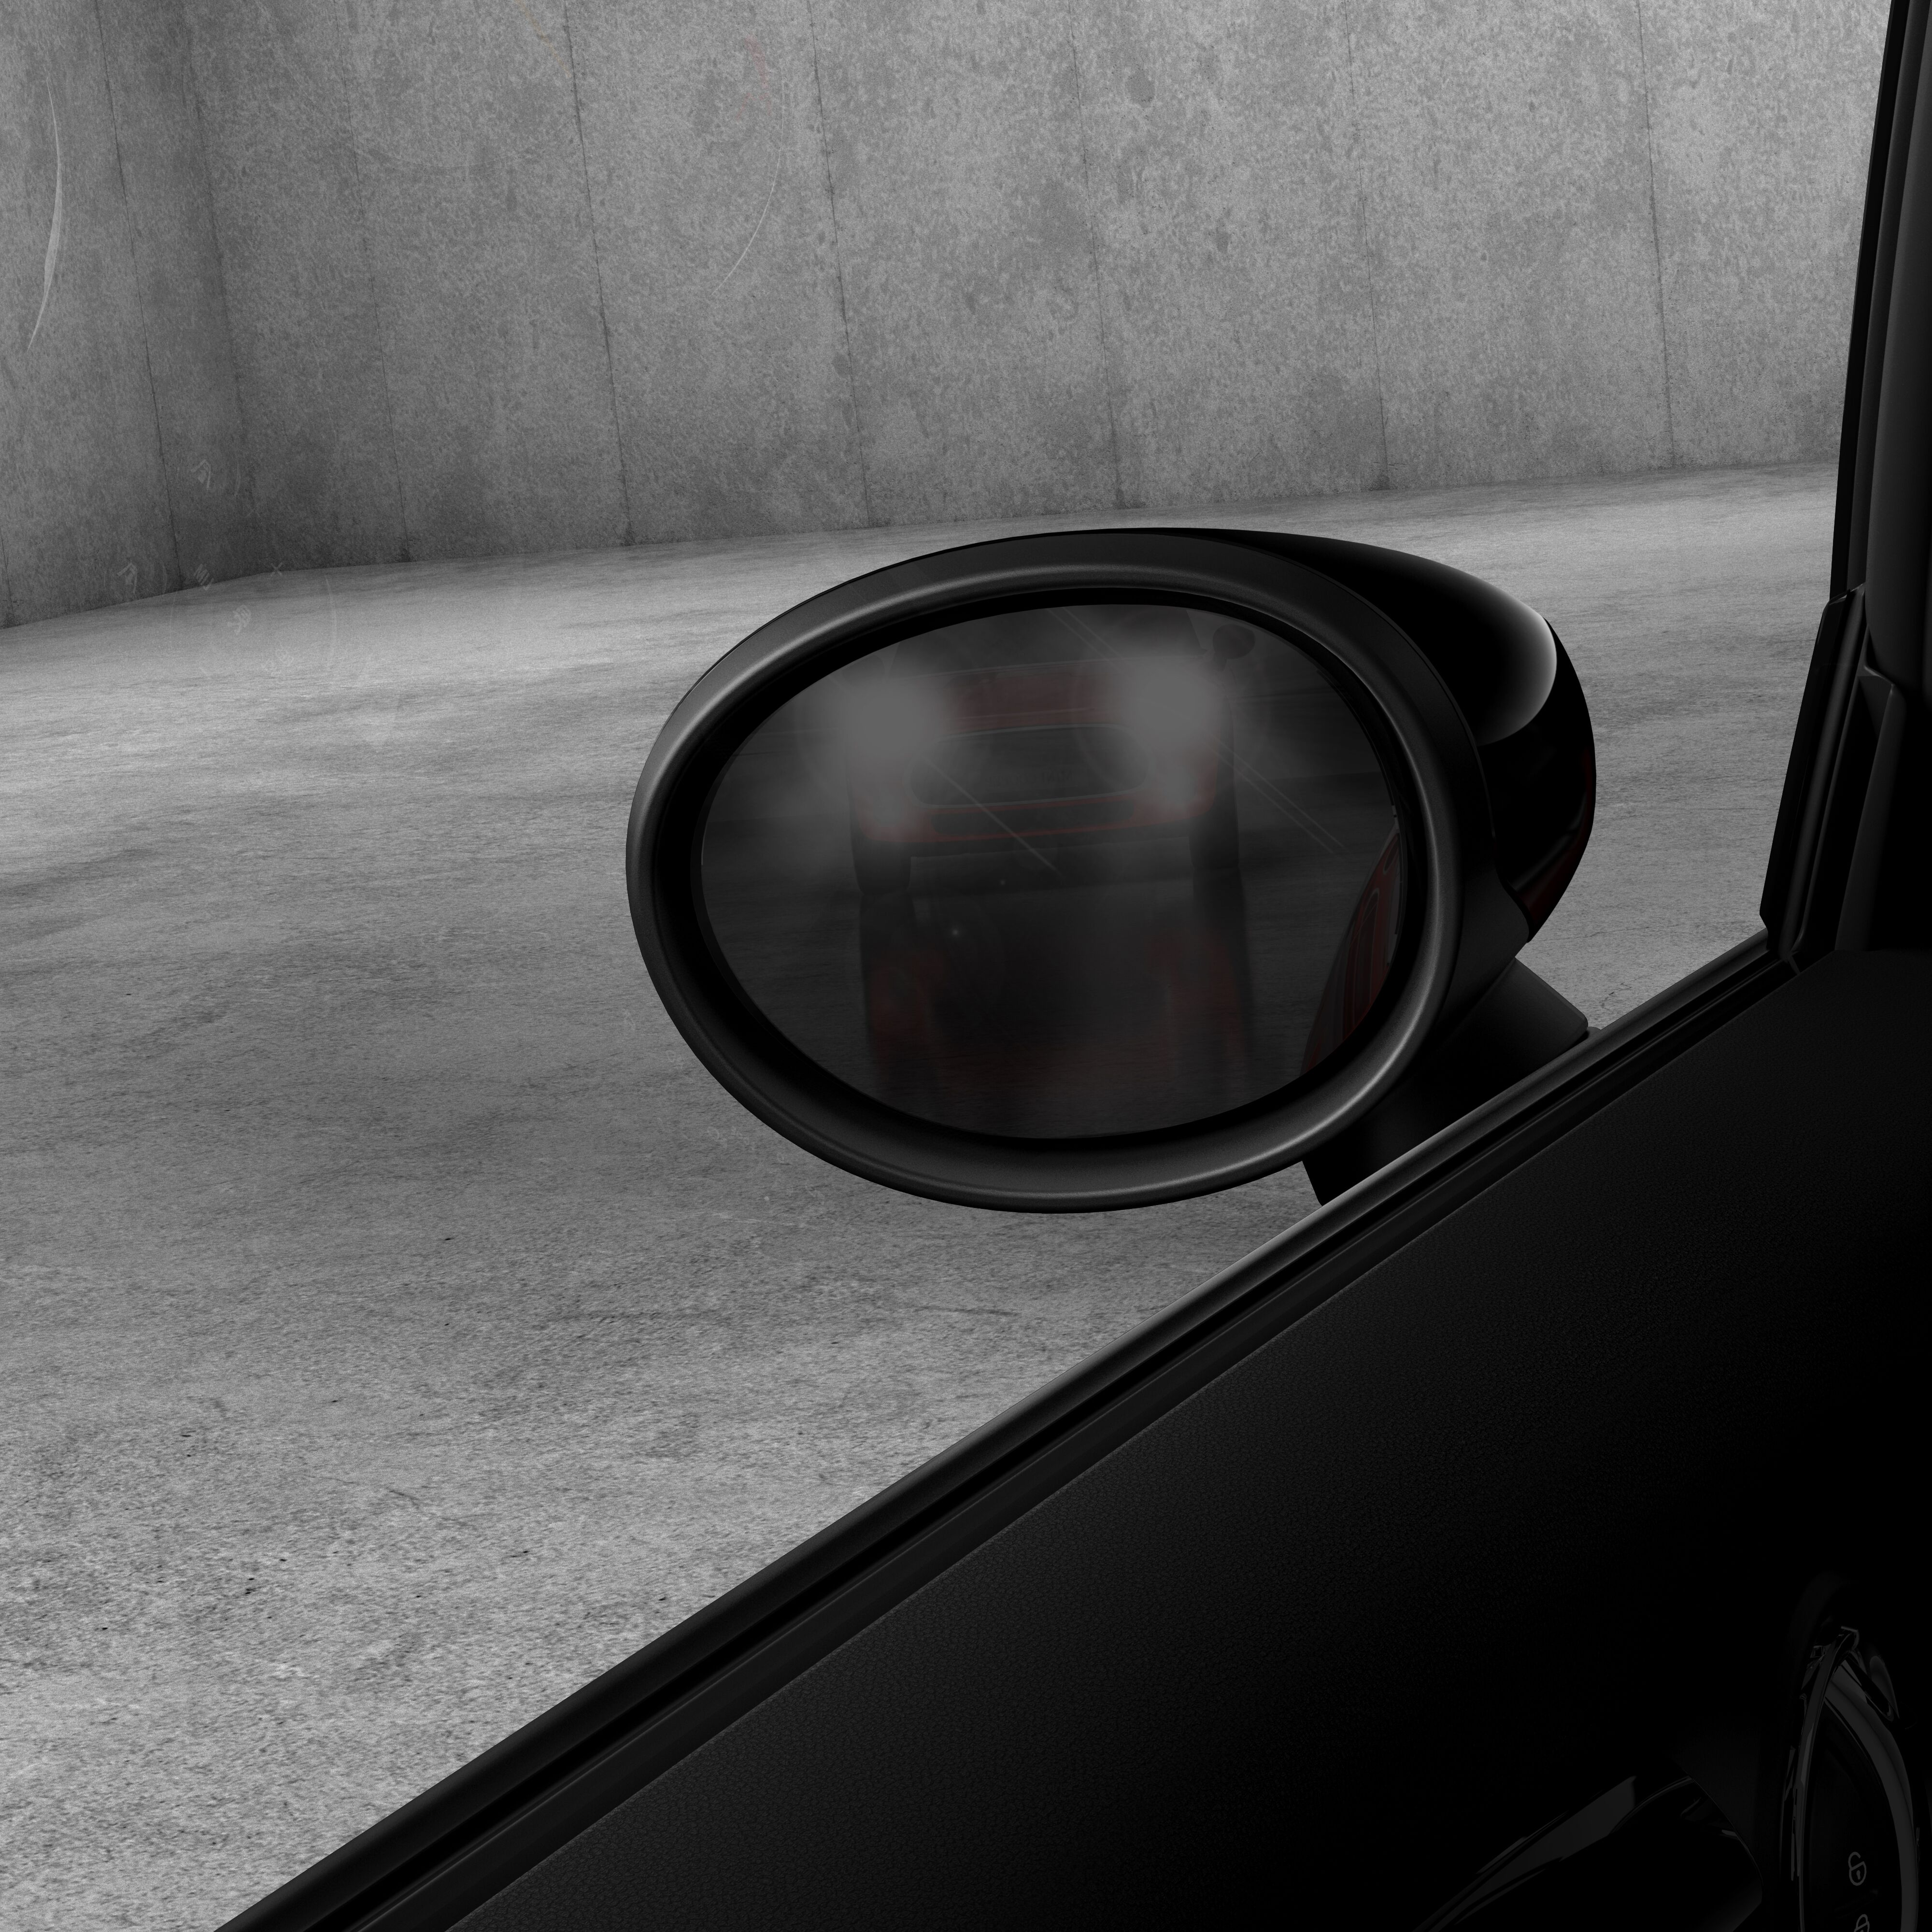 Interior and Exterior mirrors with automatic anti-dazzle function